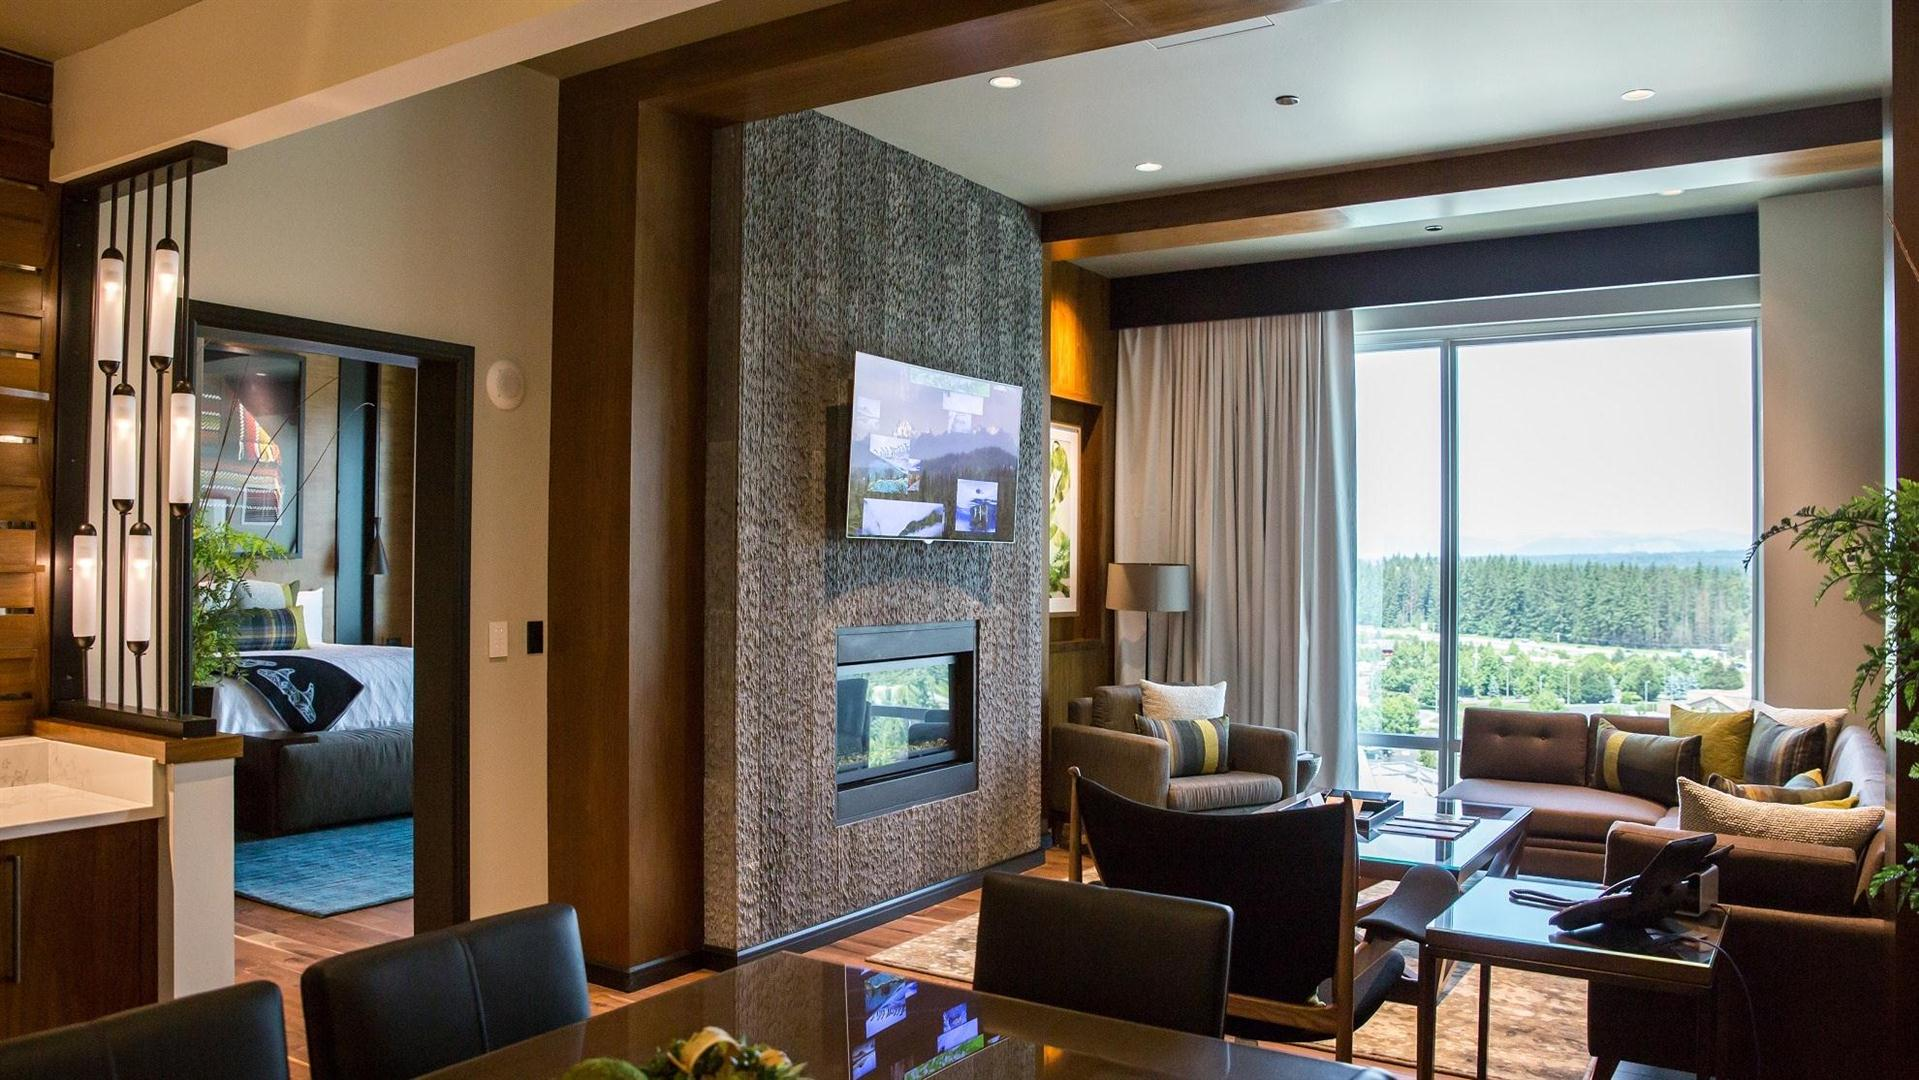 Tulalip casino rooms used casino table for sale